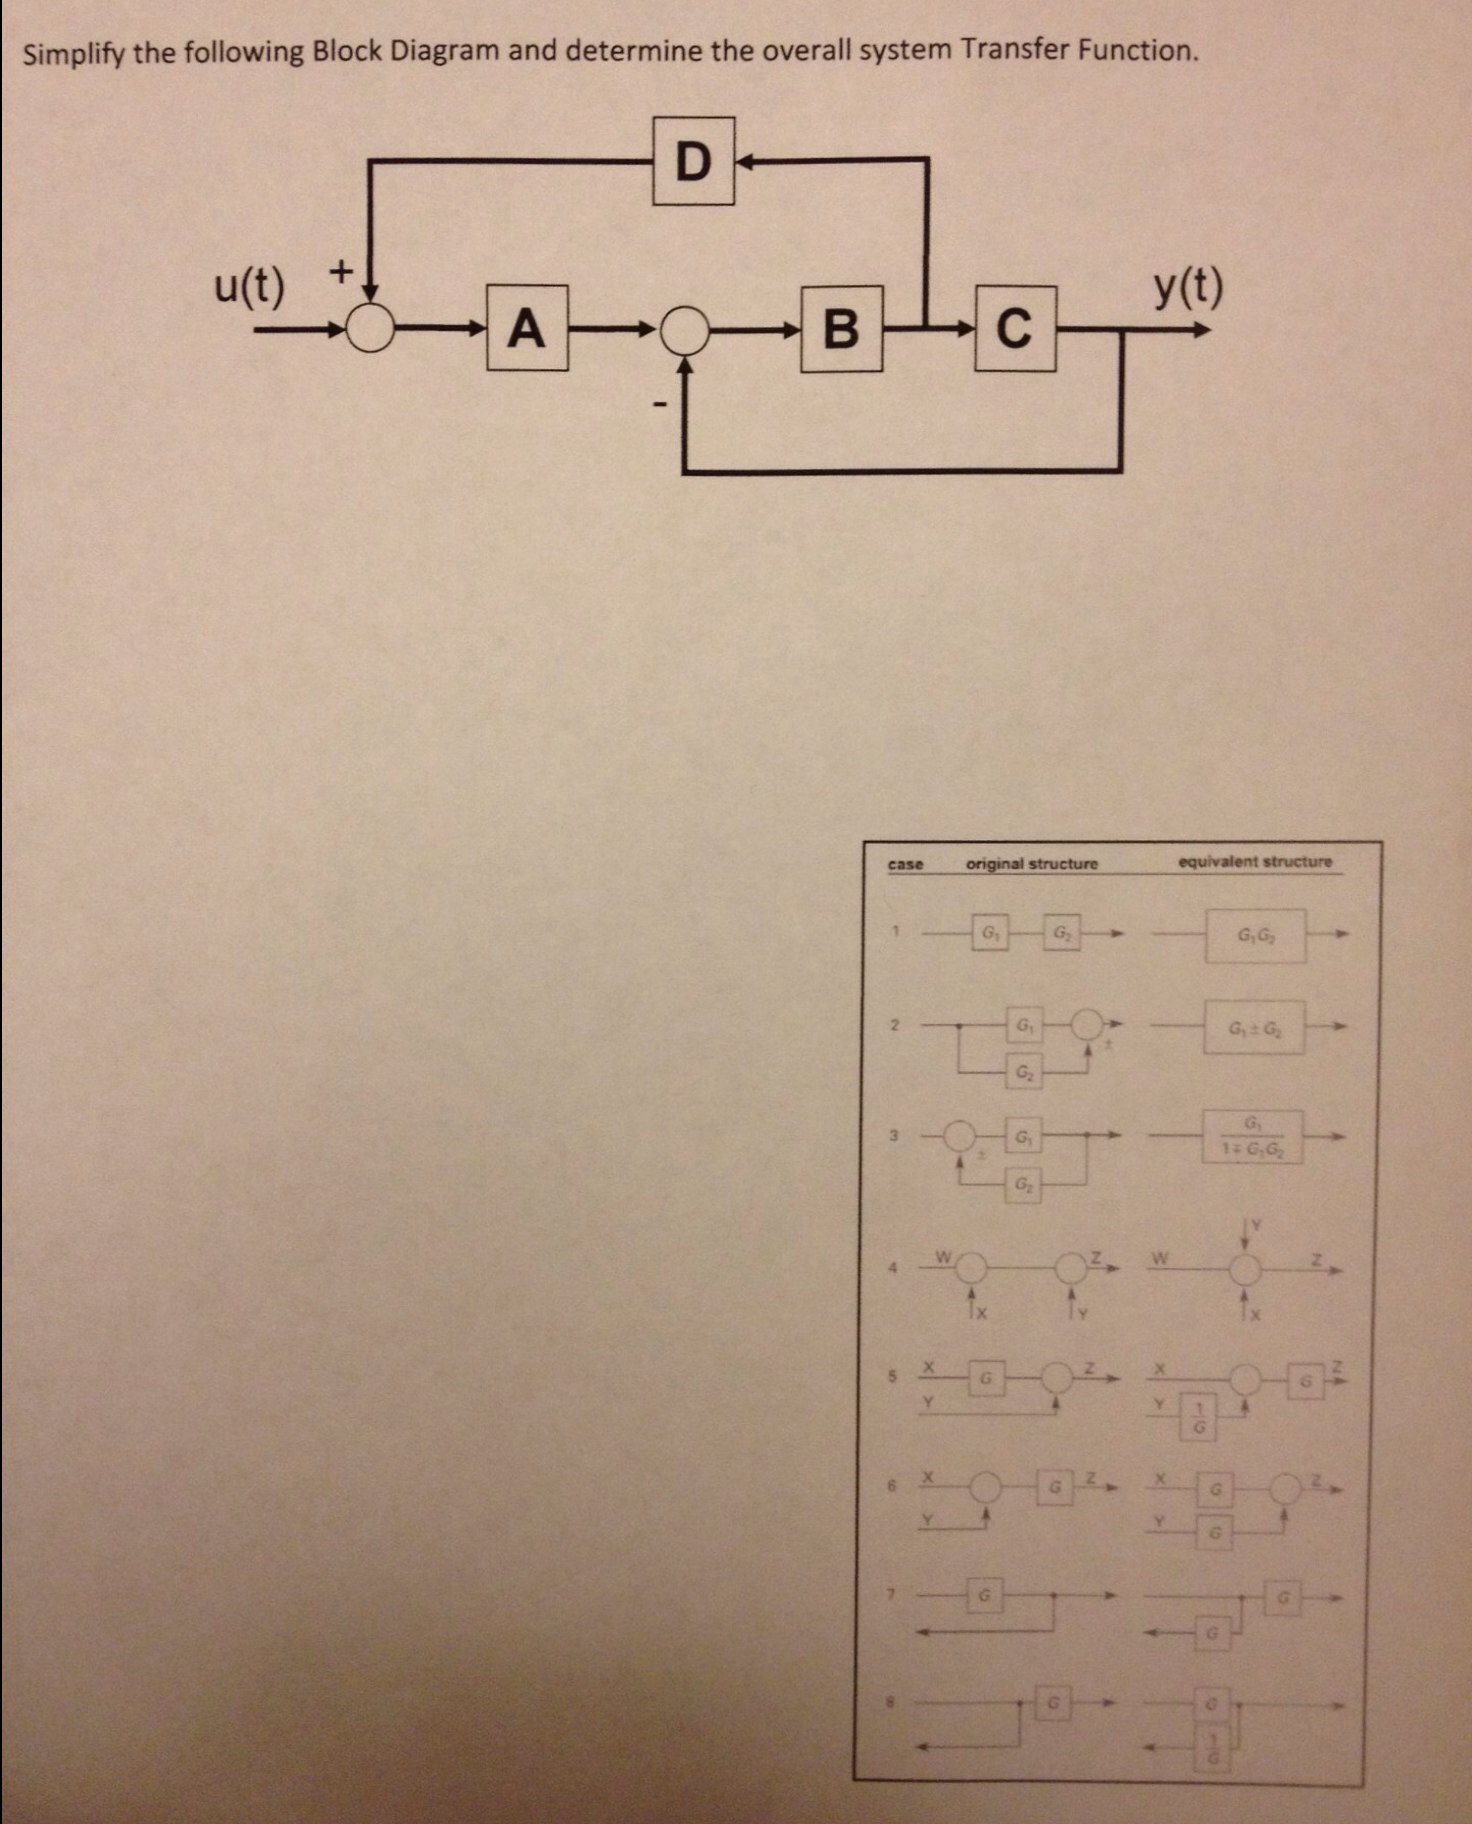 Simplify the following Block Diagram and determine